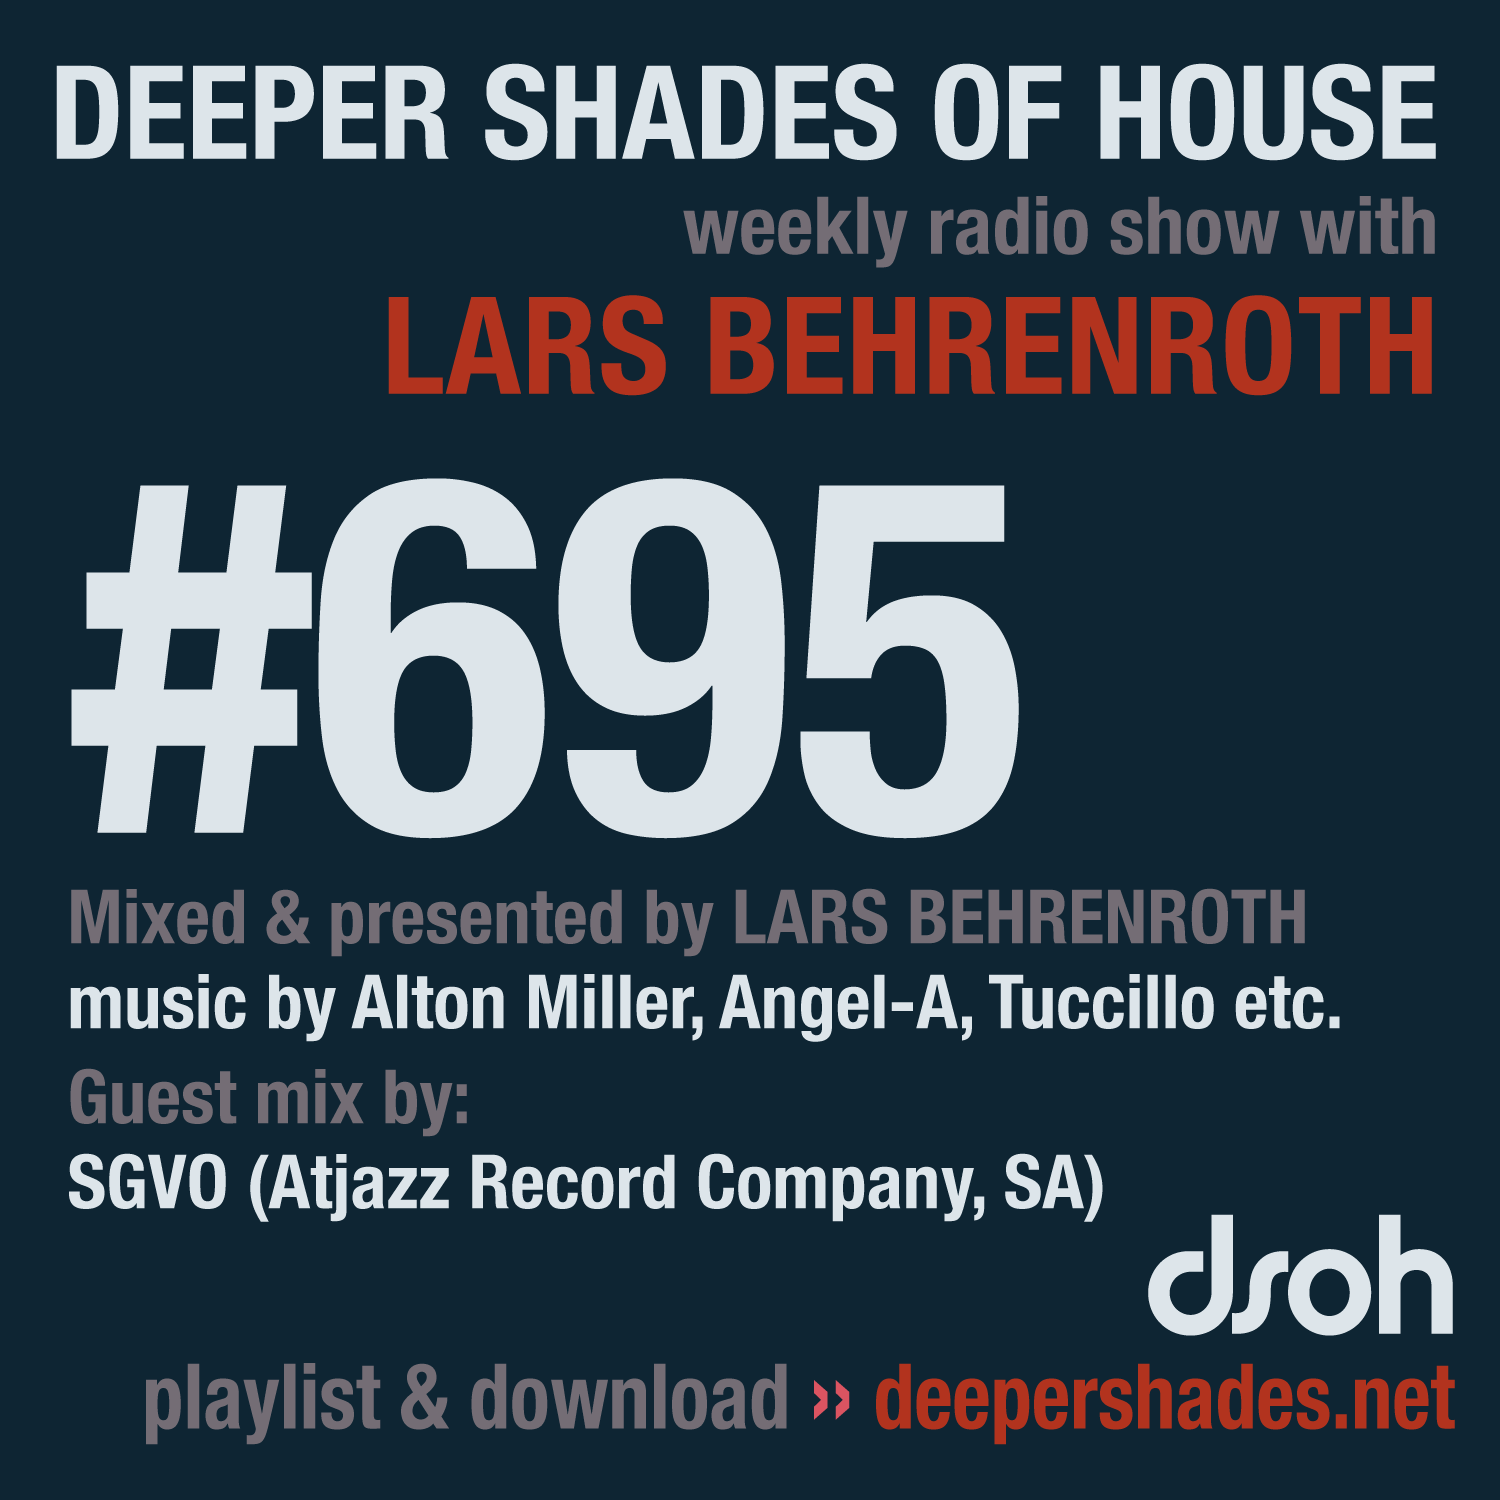 Deeper Shades Of House #695 - guest mix by SGVO